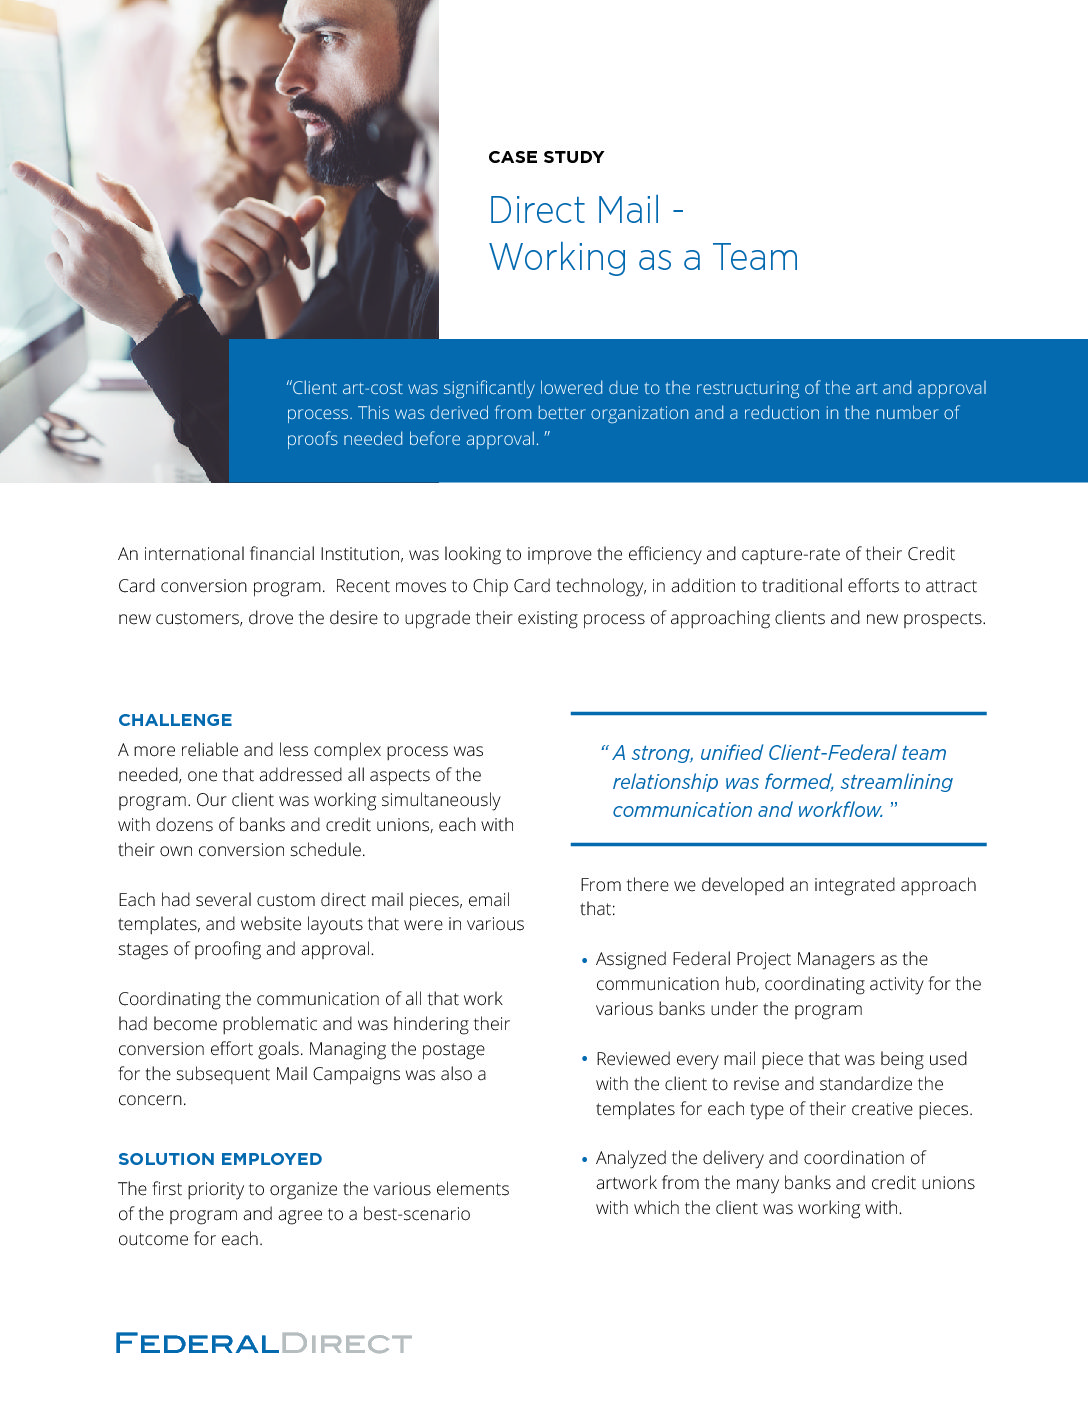 Case Study 4 - Federal Direct